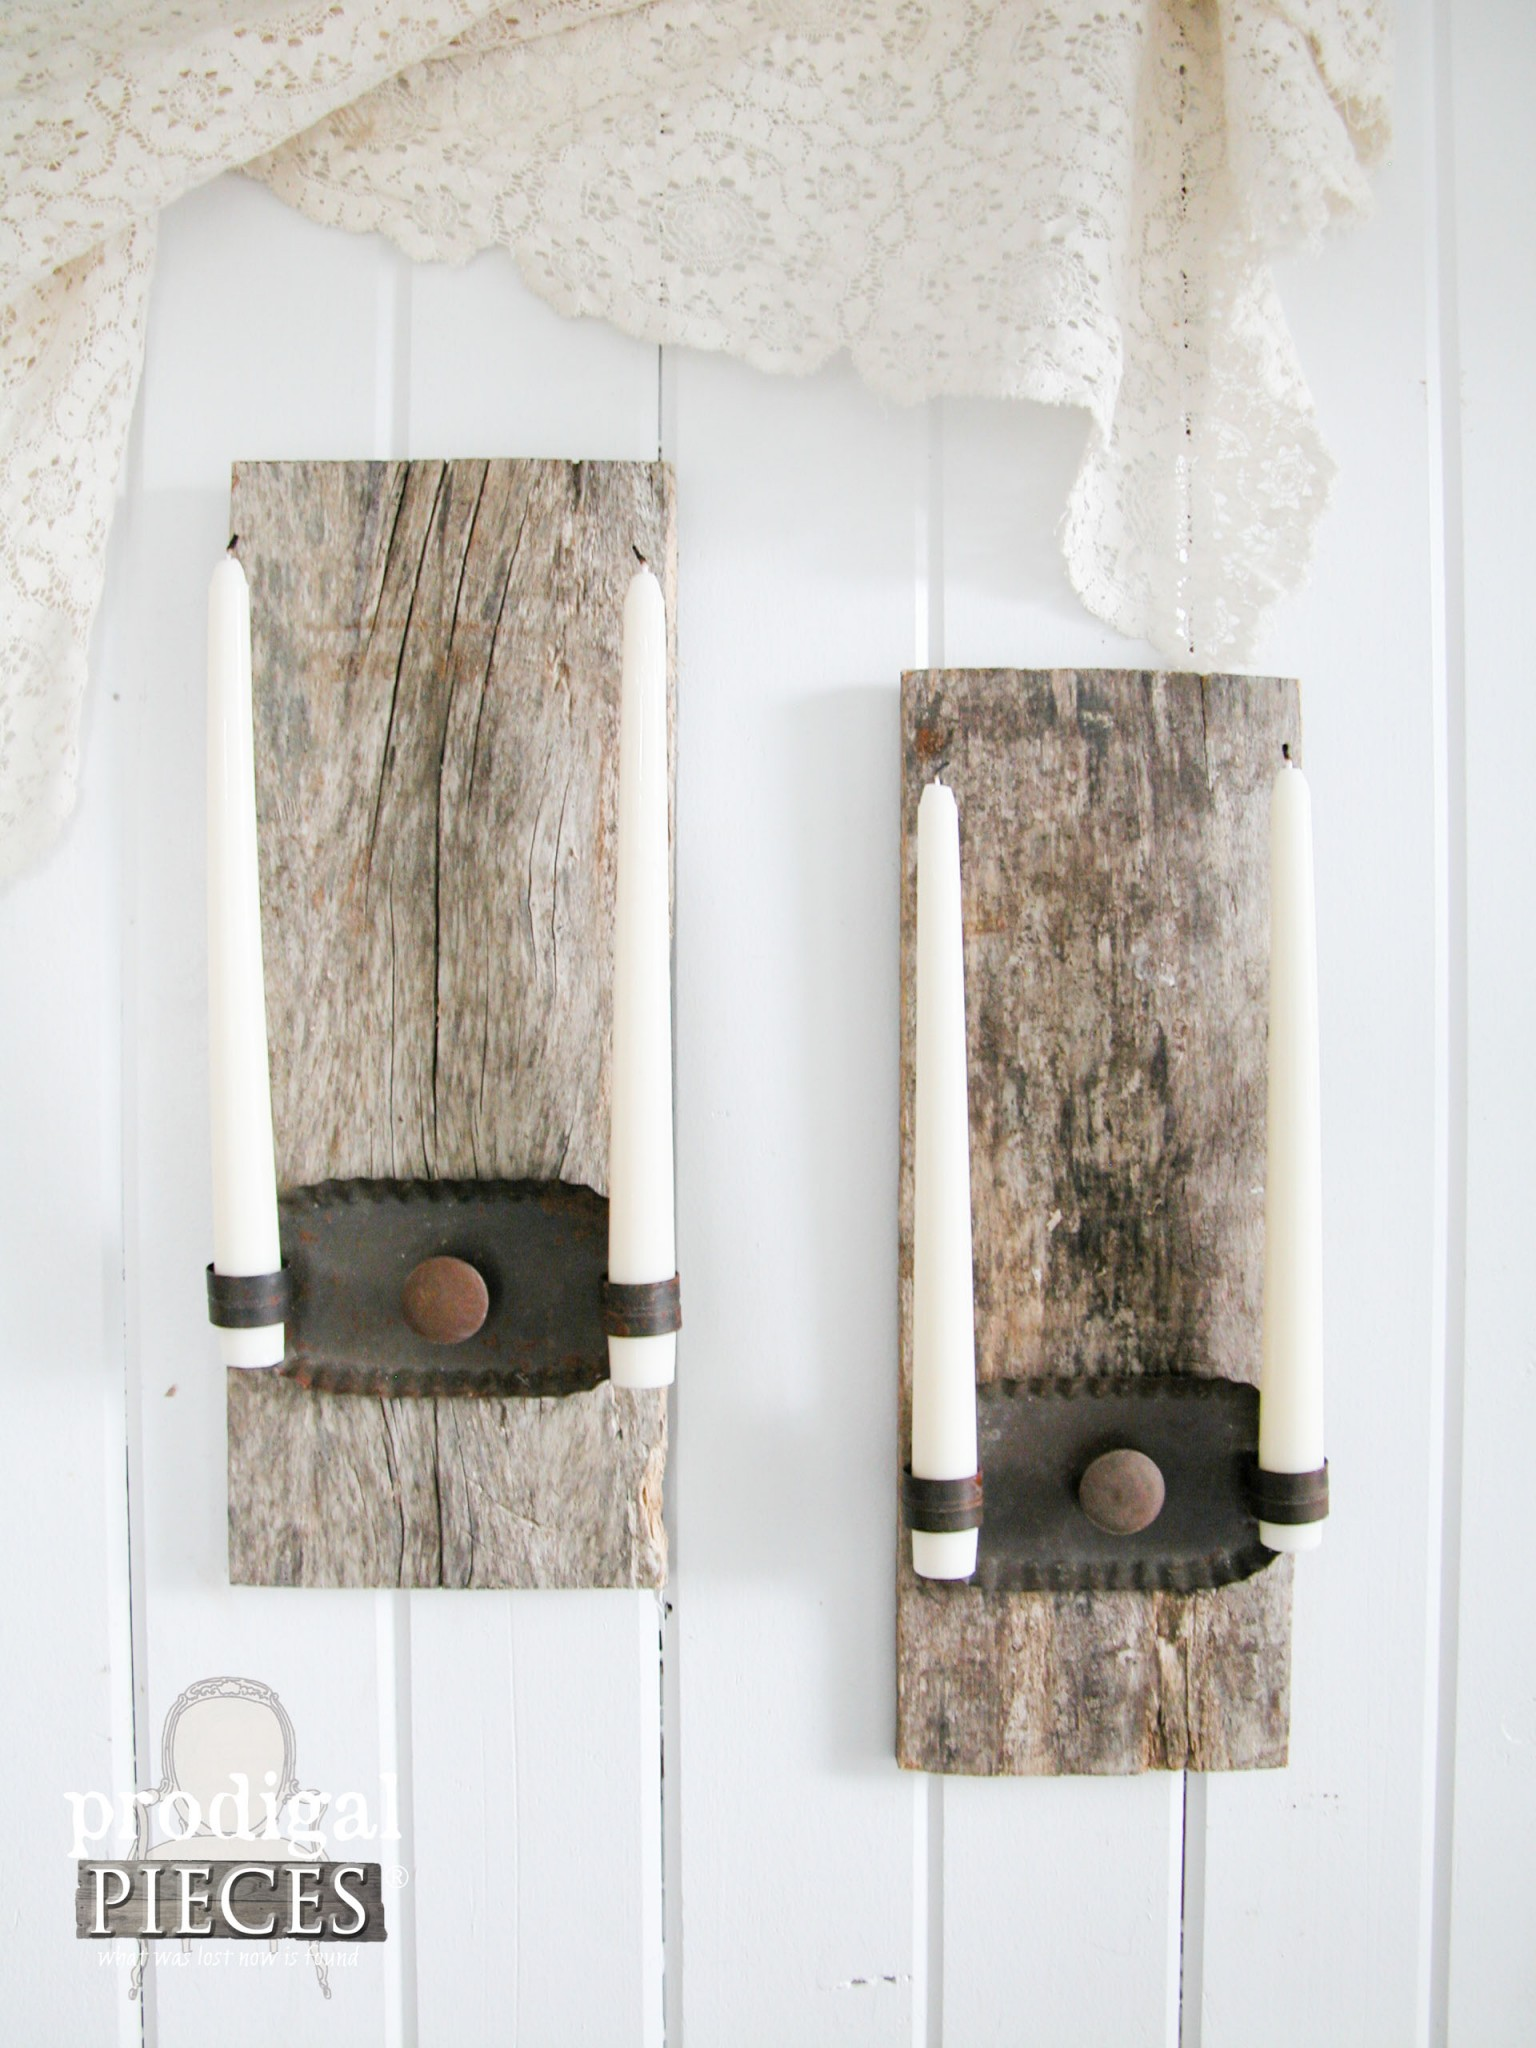 DIY Reclaimed Wood Candle Sconces by Prodigal Pieces | www.prodigalpieces.com